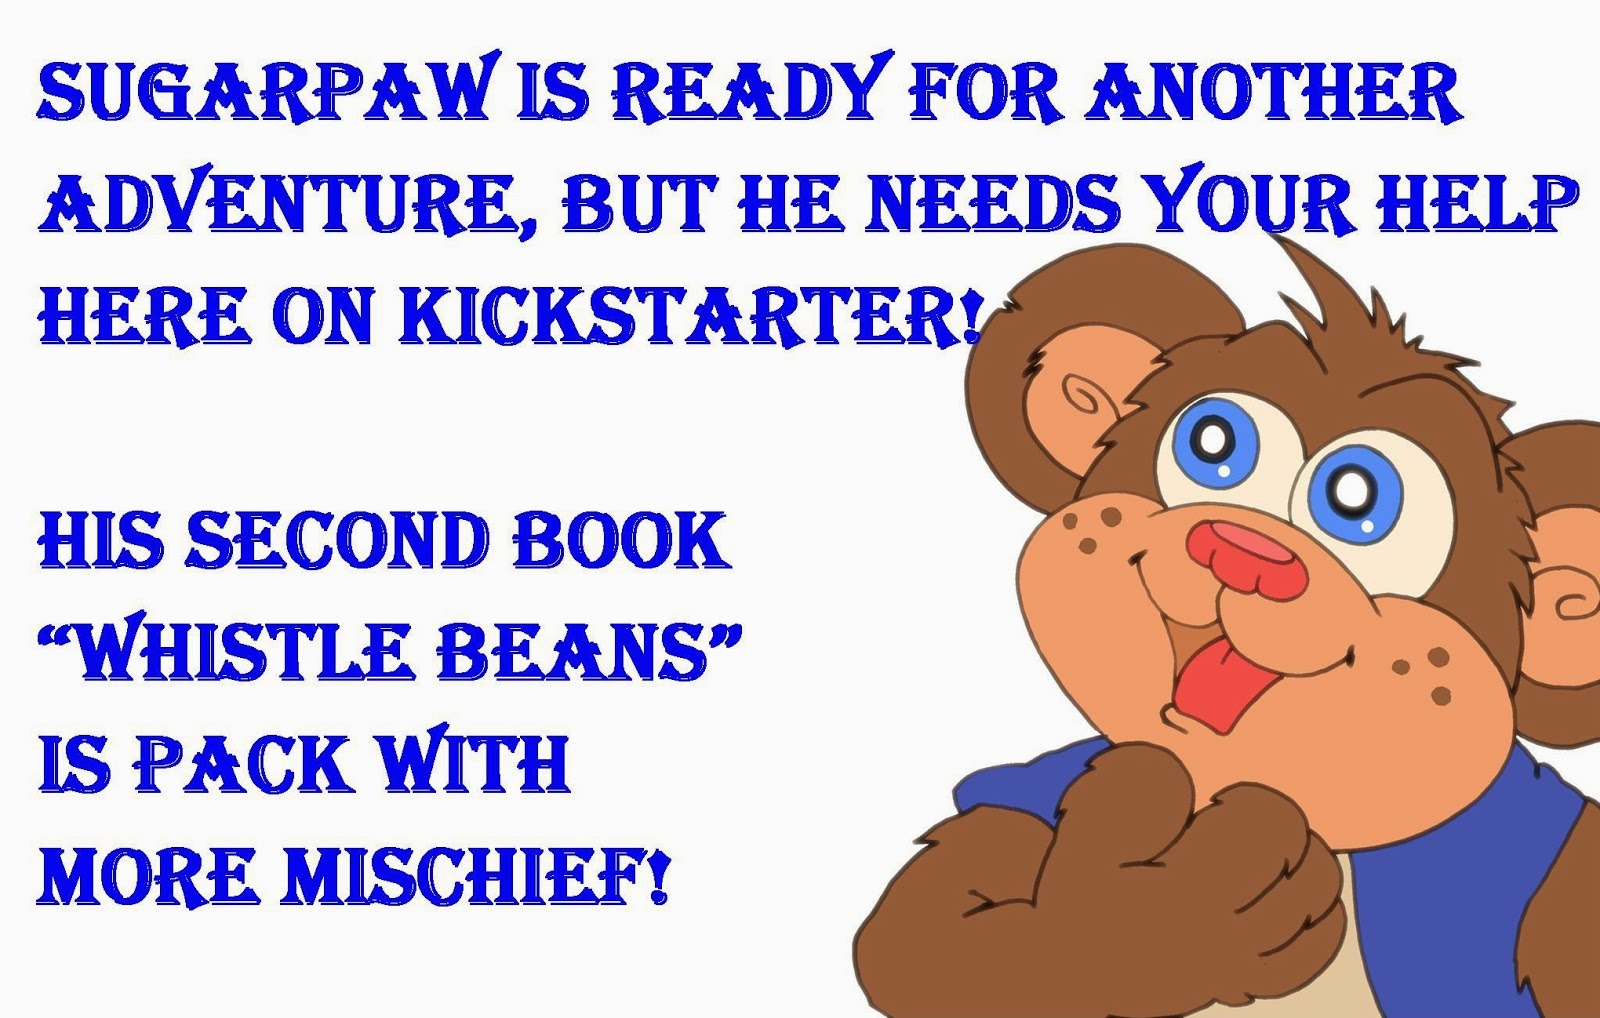 https://www.kickstarter.com/projects/1440757101/whistle-beans-another-sugarpaw-adventure